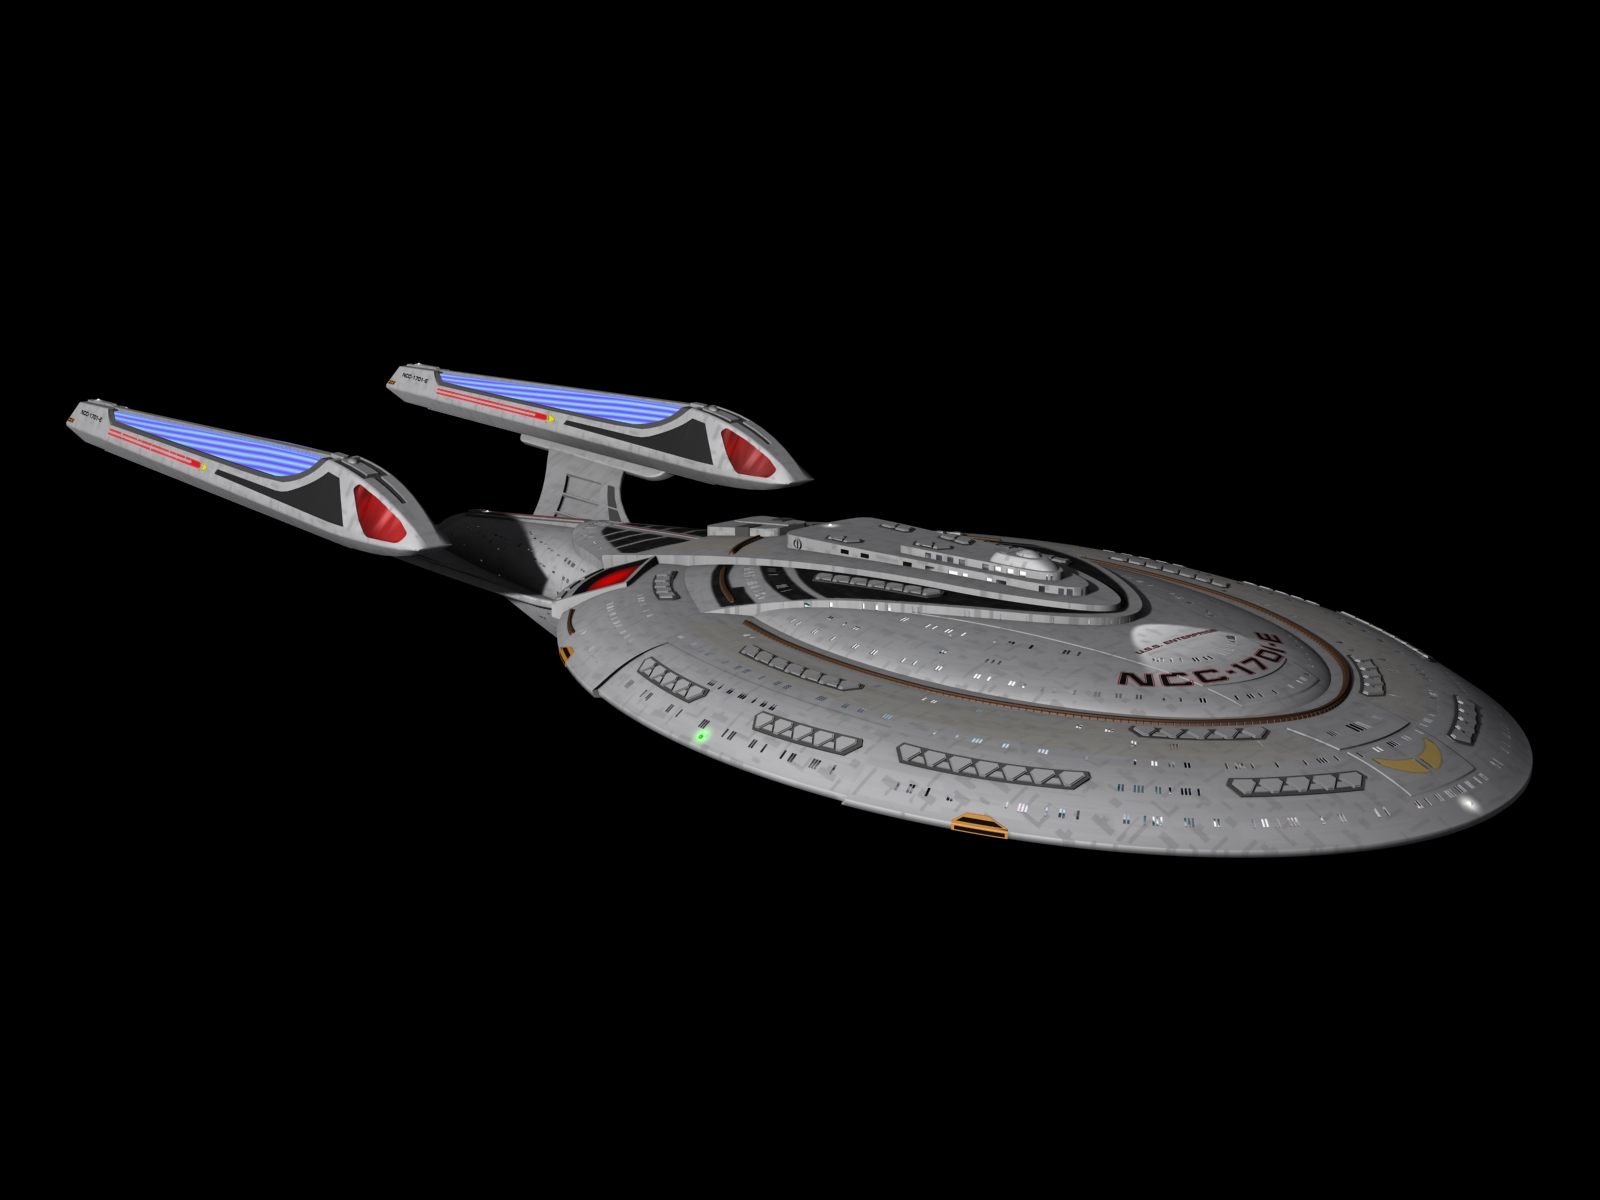 Star Trek - The Next Generation Enterprise-E NCC-1701-E by